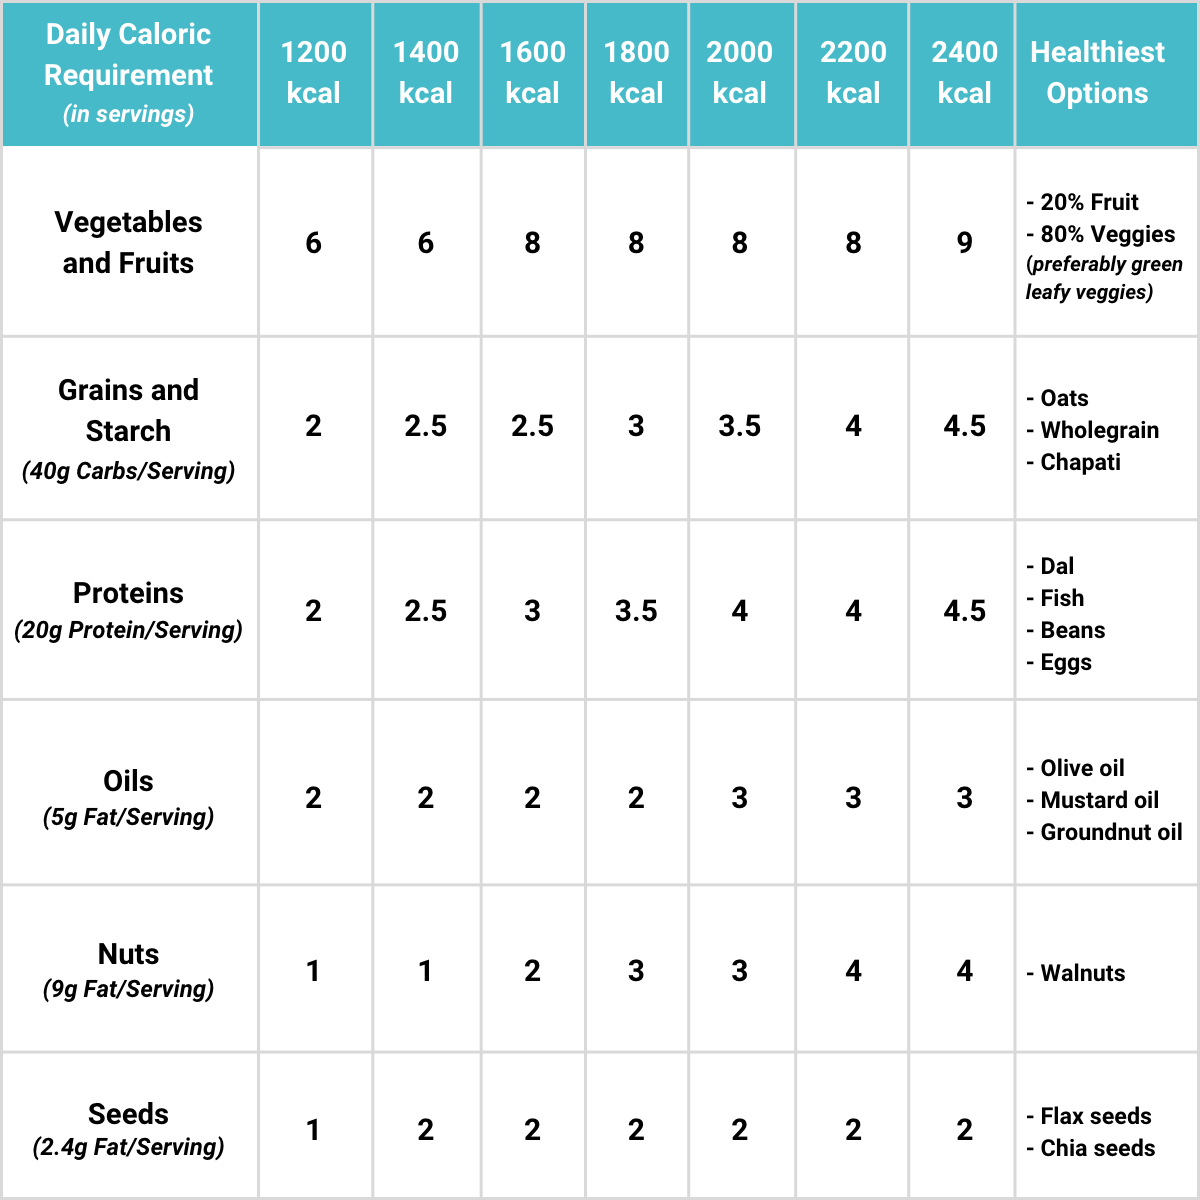 Daily Caloric Requirement Table - Nutrova